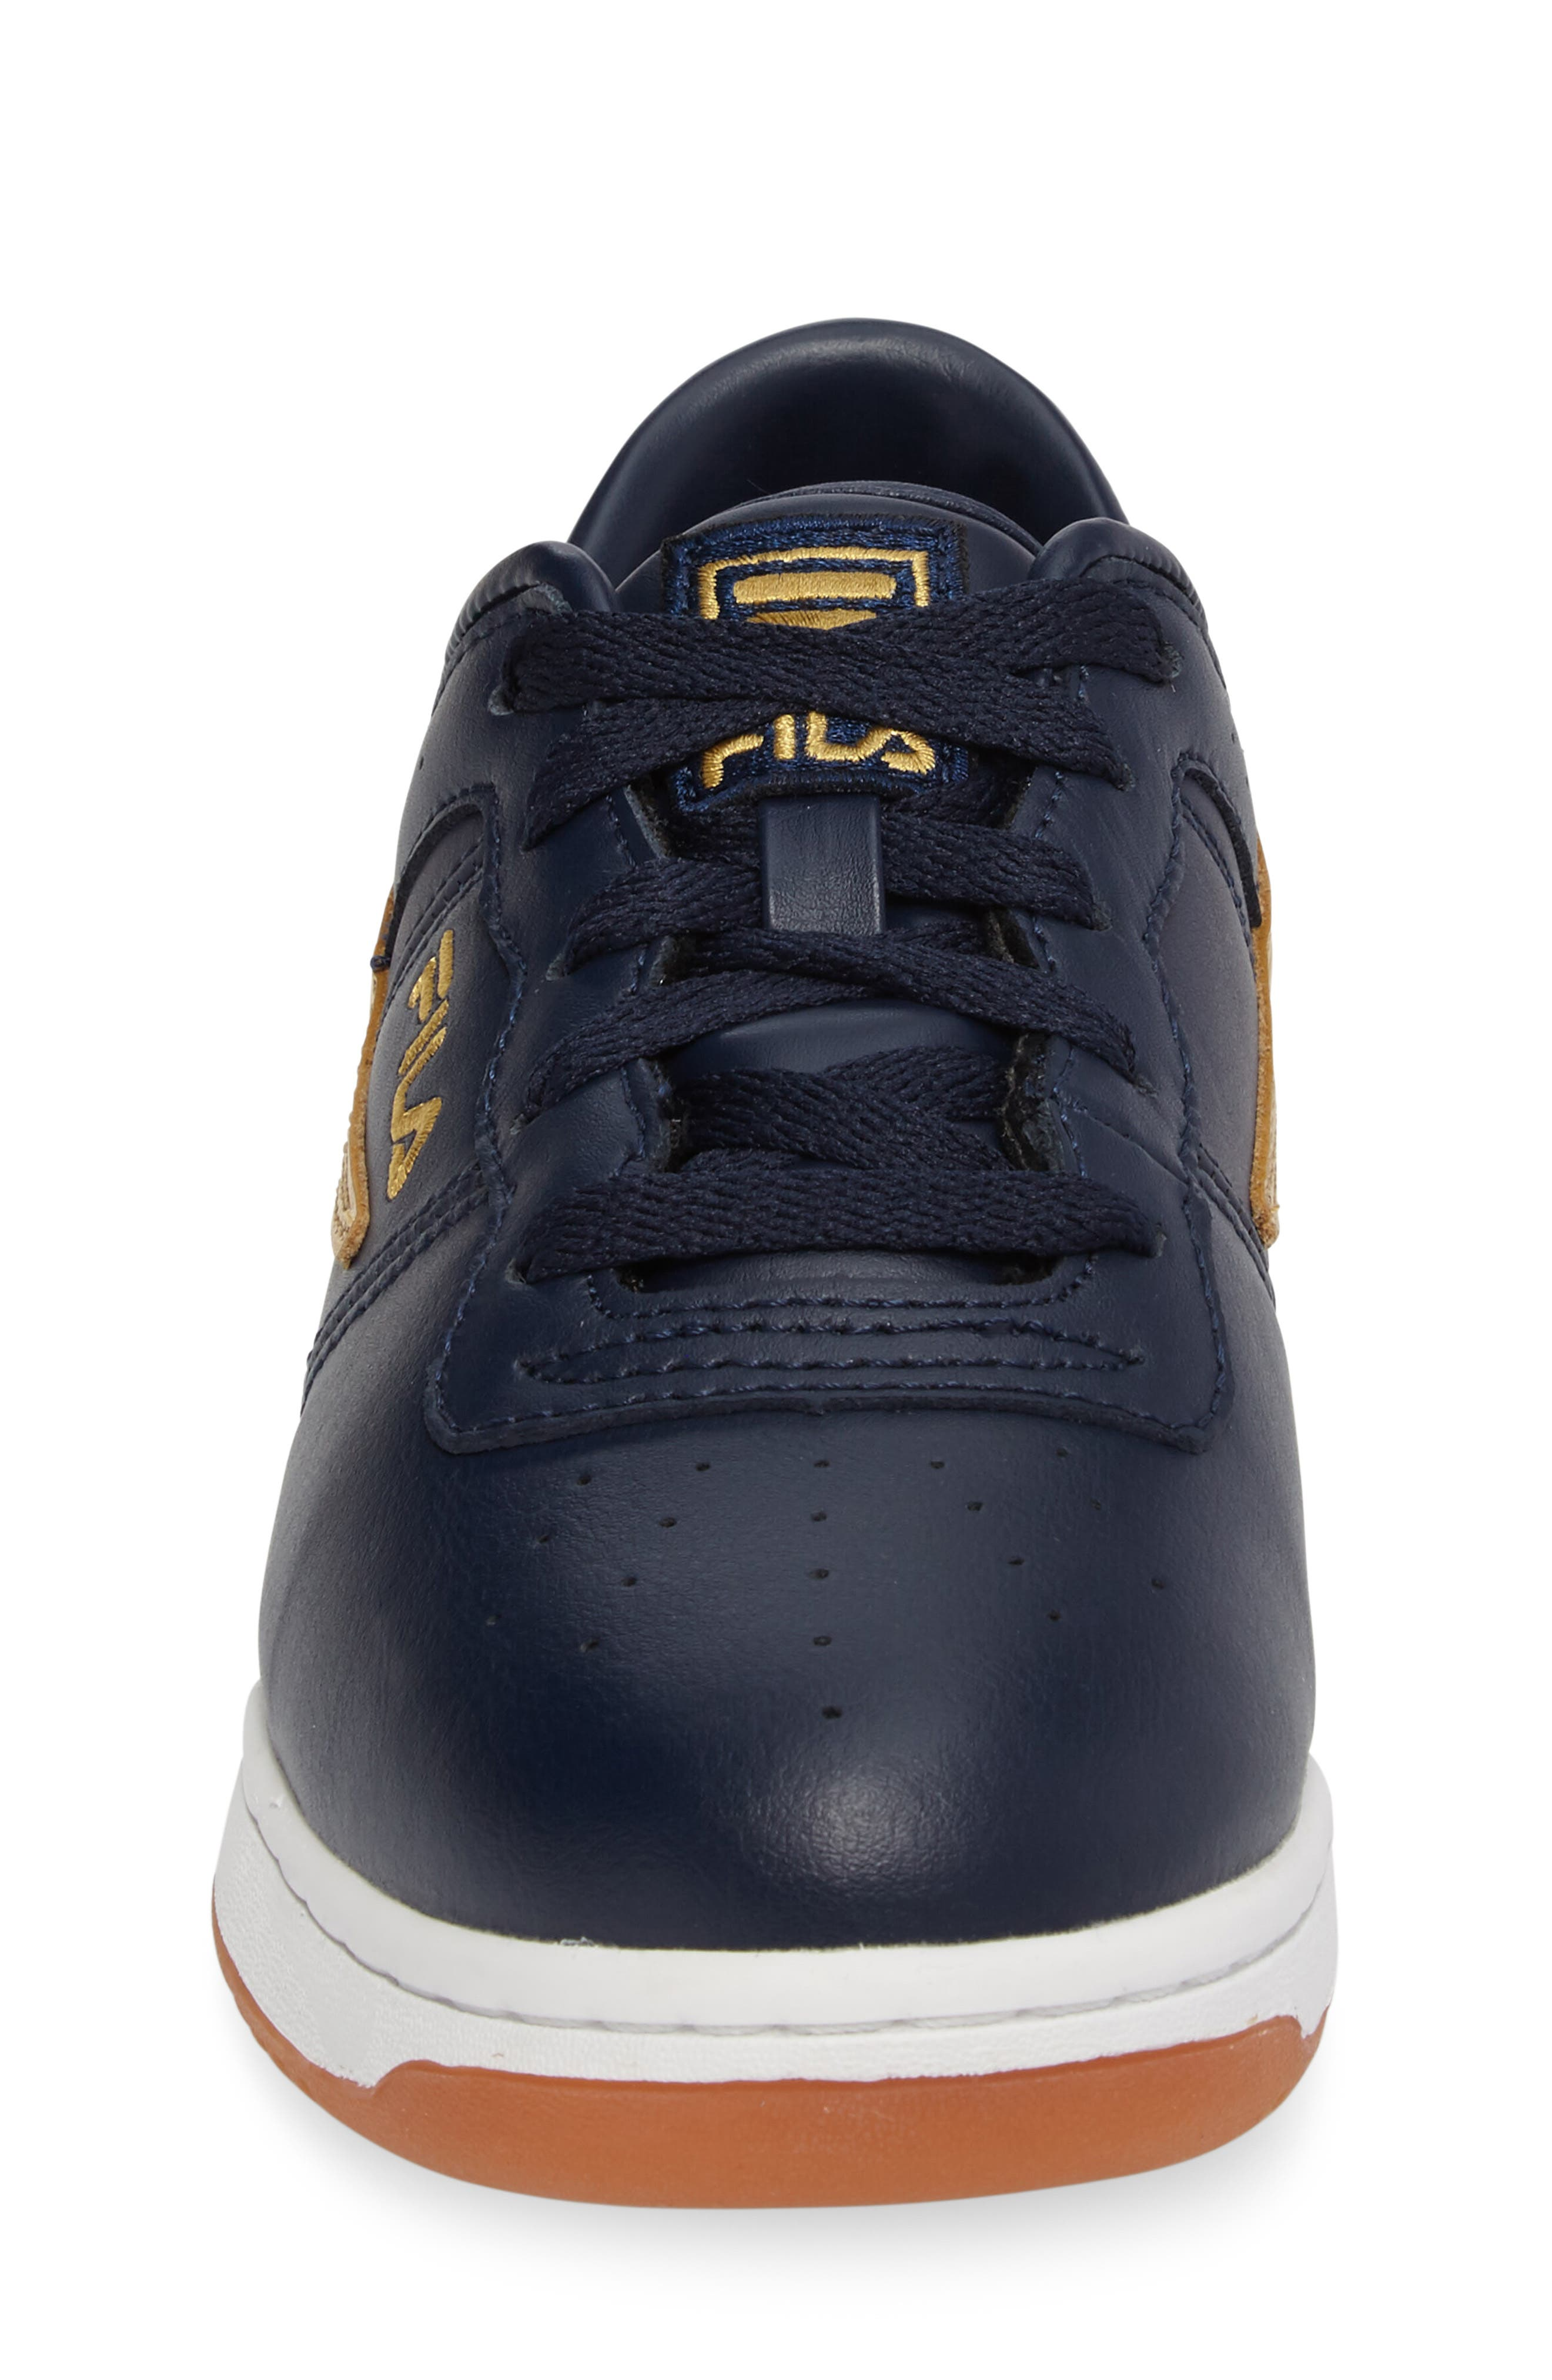 Heritage Sneaker,                             Alternate thumbnail 4, color,                             Navy/ Gold Faux Leather